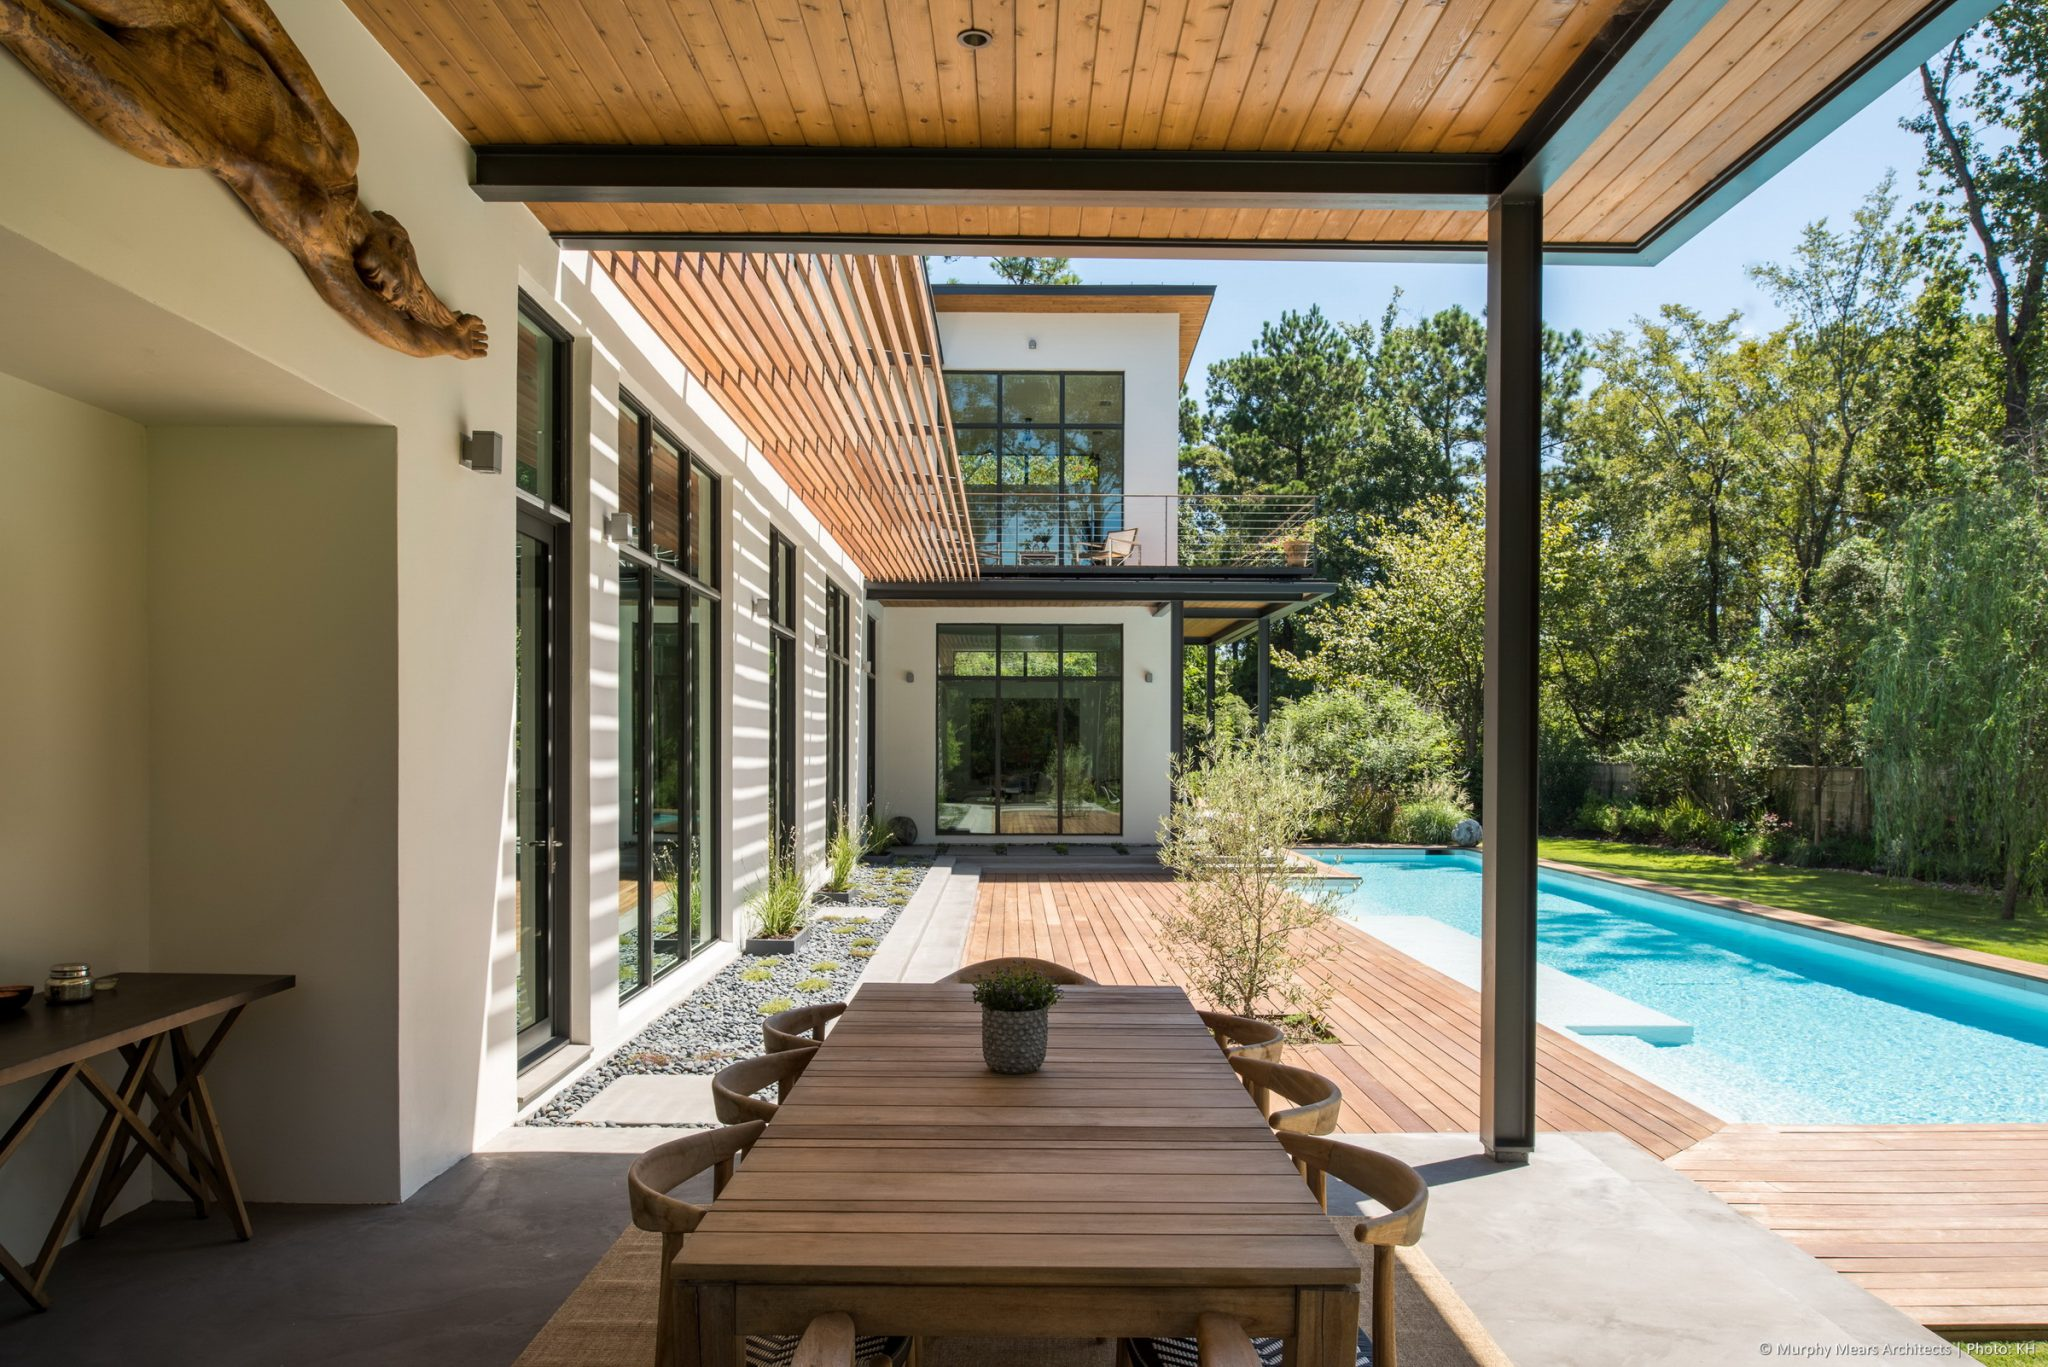 Shaded outdoor space in the covered terrace, with a view of the family room and master bedroom beyond projecting into the backyard space.